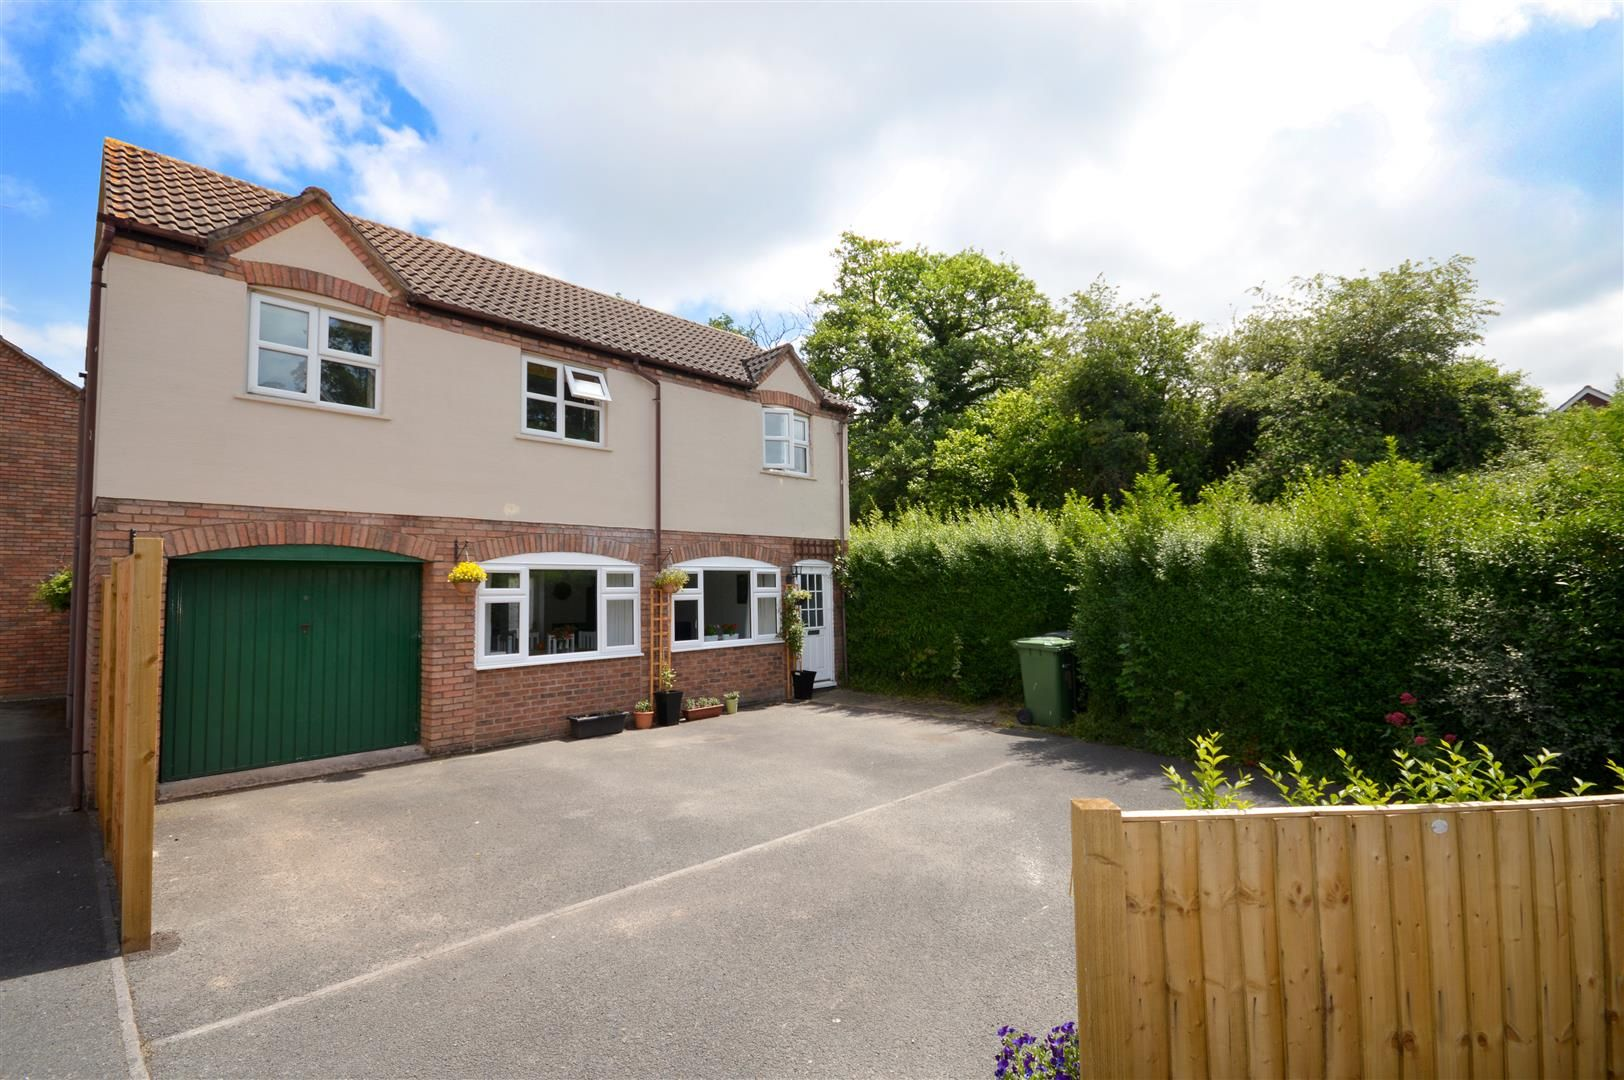 3 bed detached for sale in Belmont 11